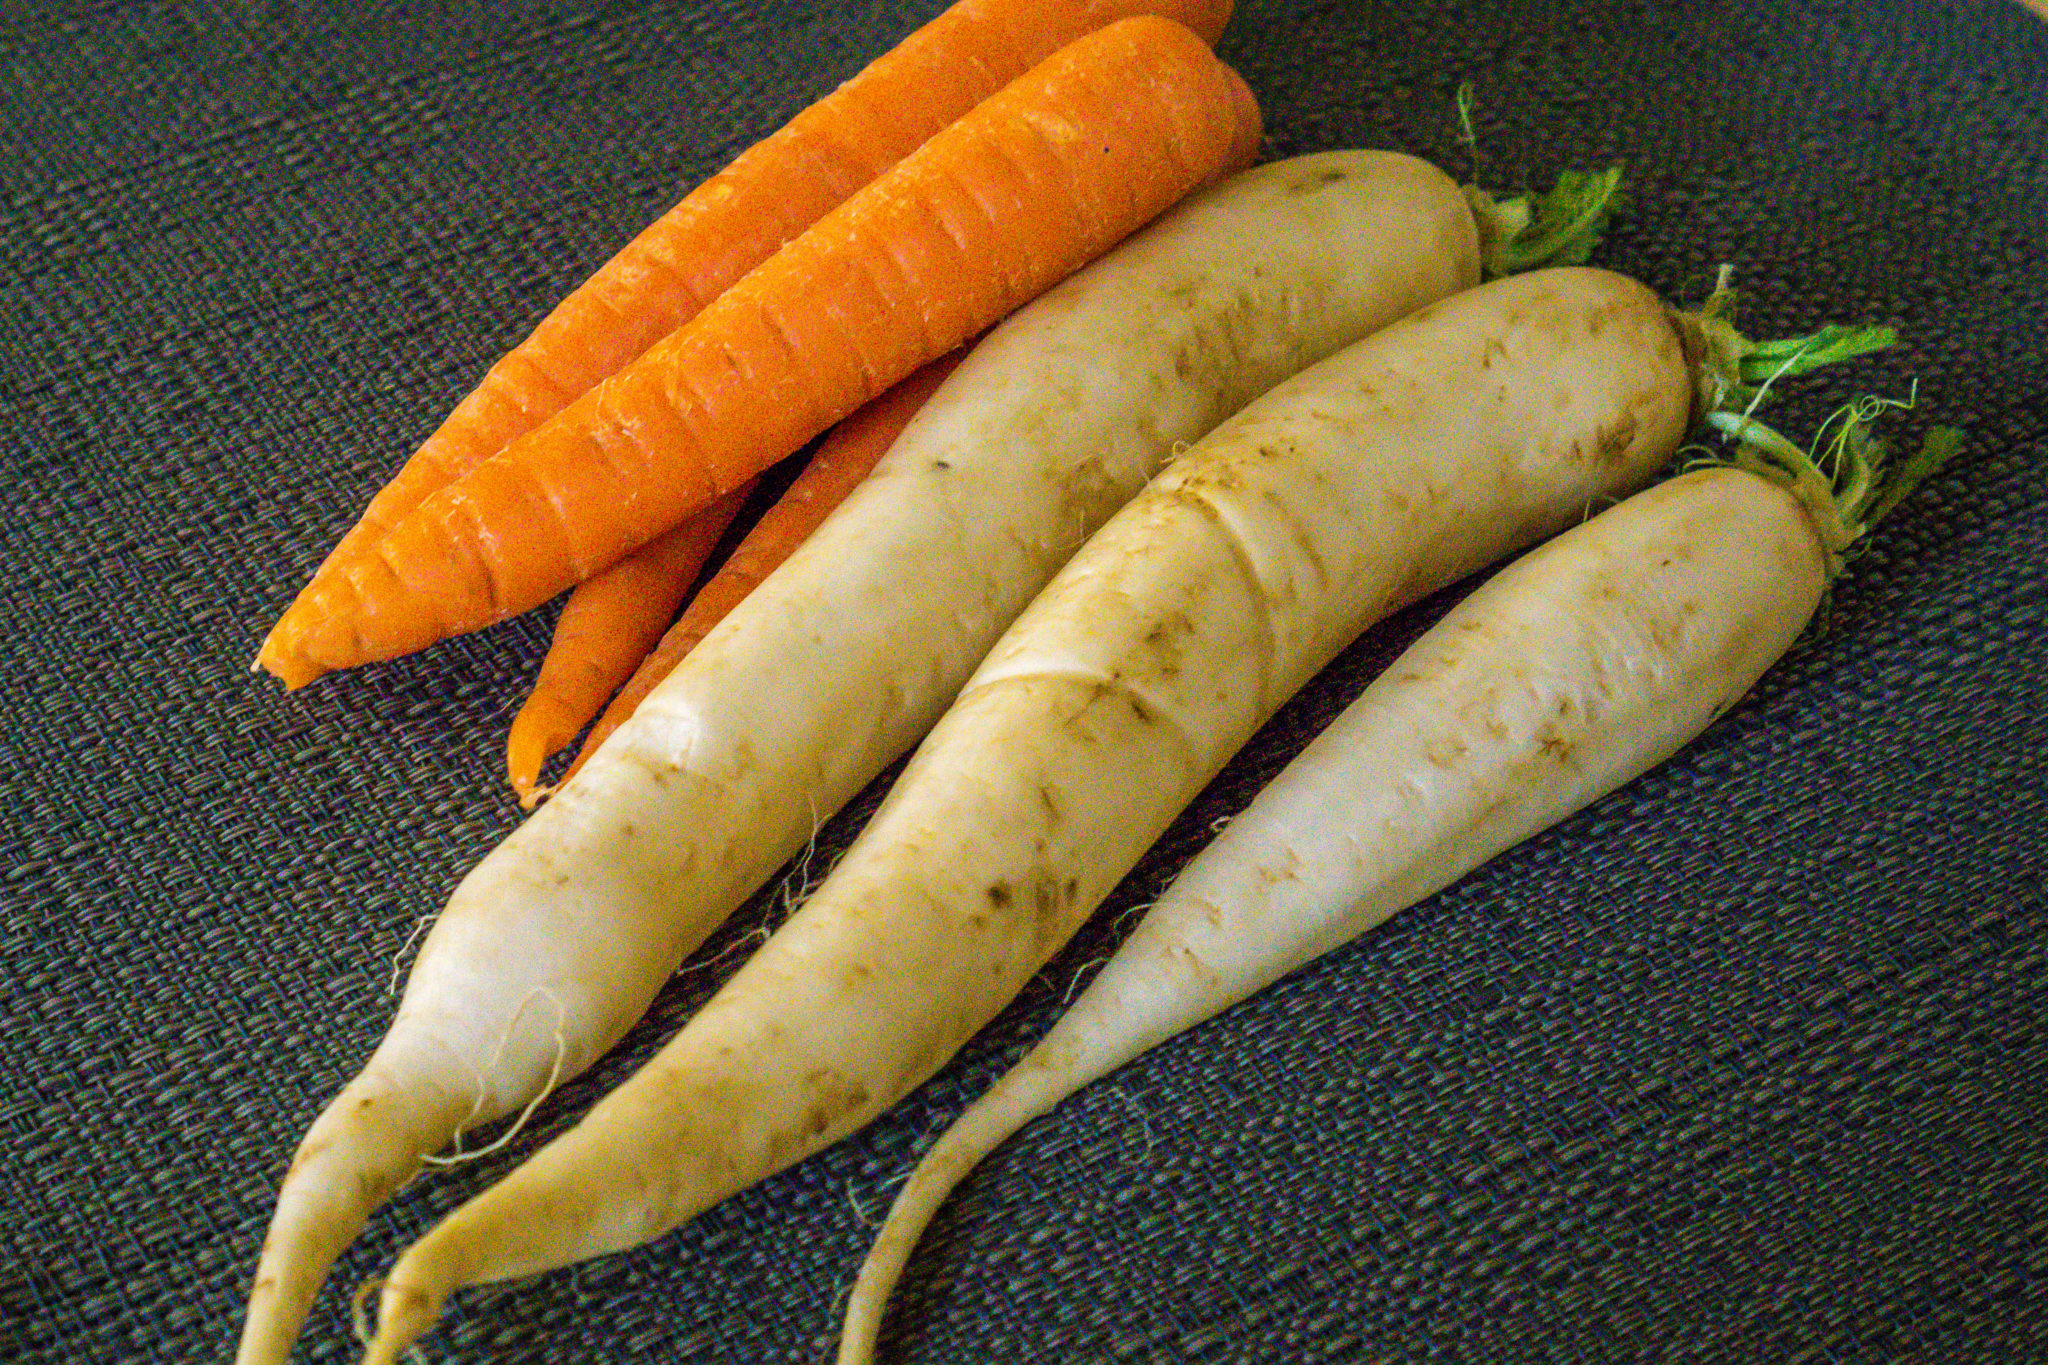 Carrots and Daikon Radish for a Shaved Carrot and Daikon Salad with Sesame Ginger Dressing